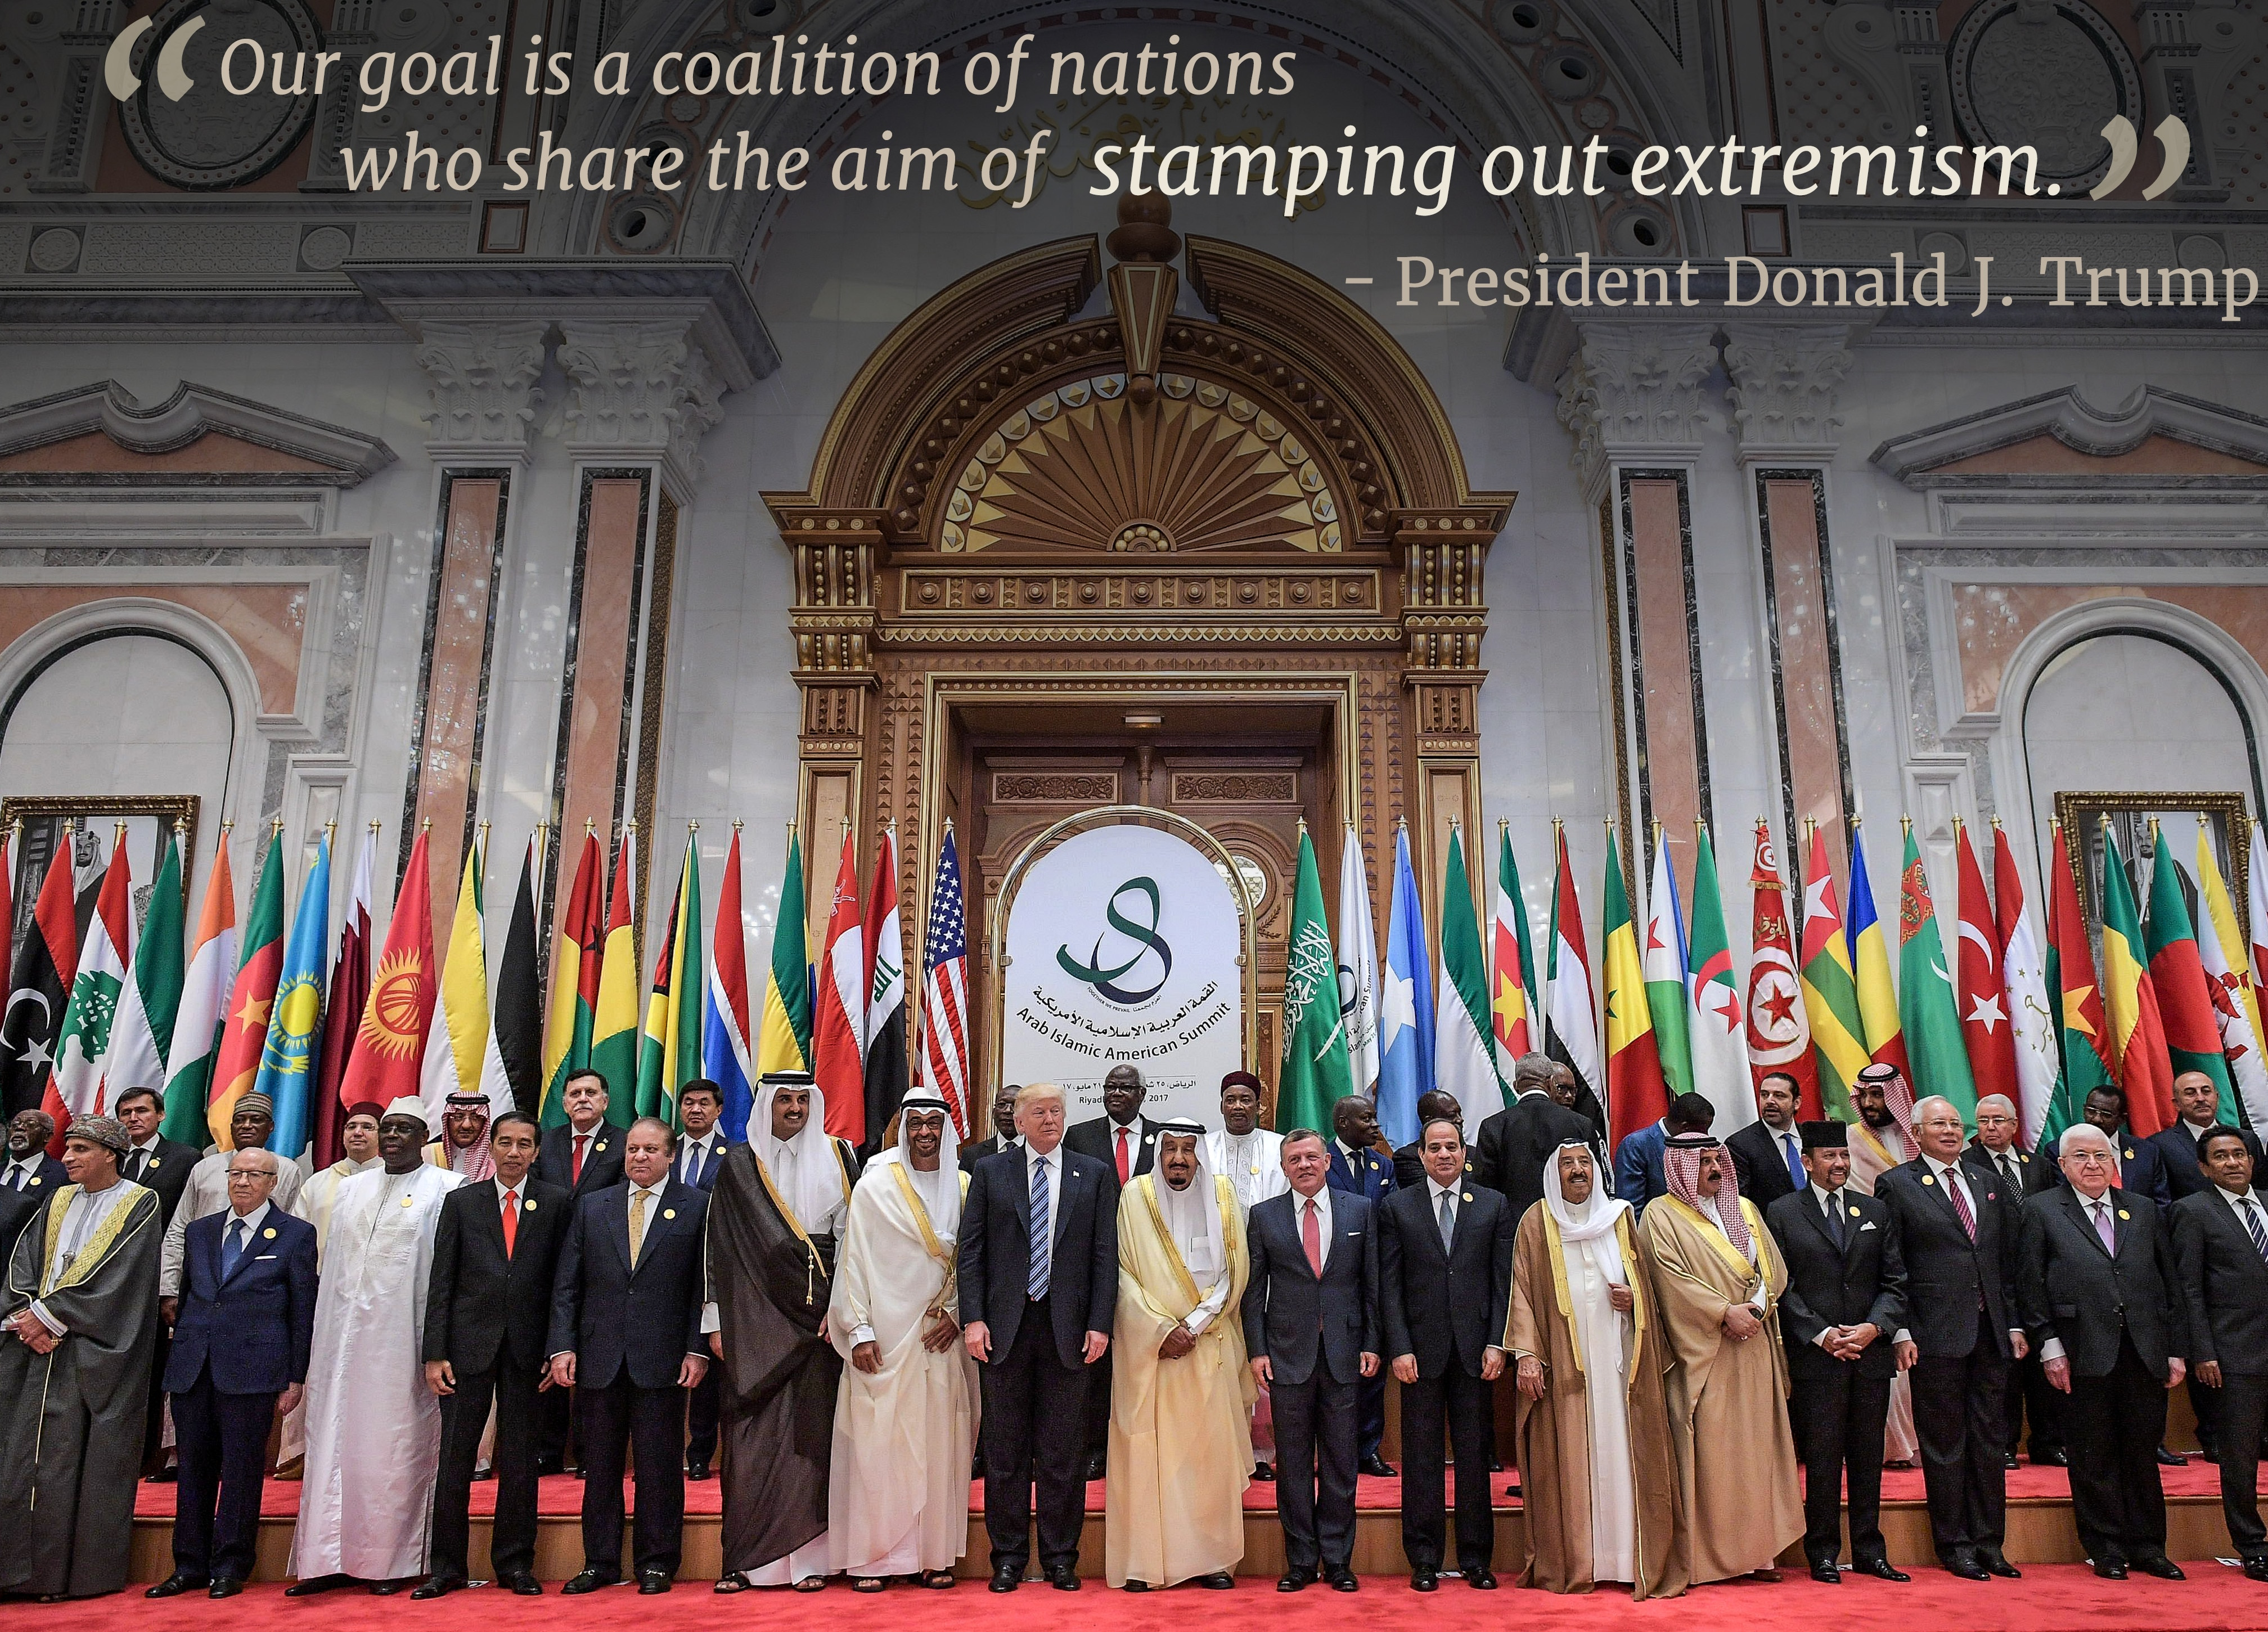 Group of people standing in line in front of flags with overlaid text 'Our goal is a coalition of nations who share the aim of stamping out extremism' (© Mandel Ngan/AFP/Getty)